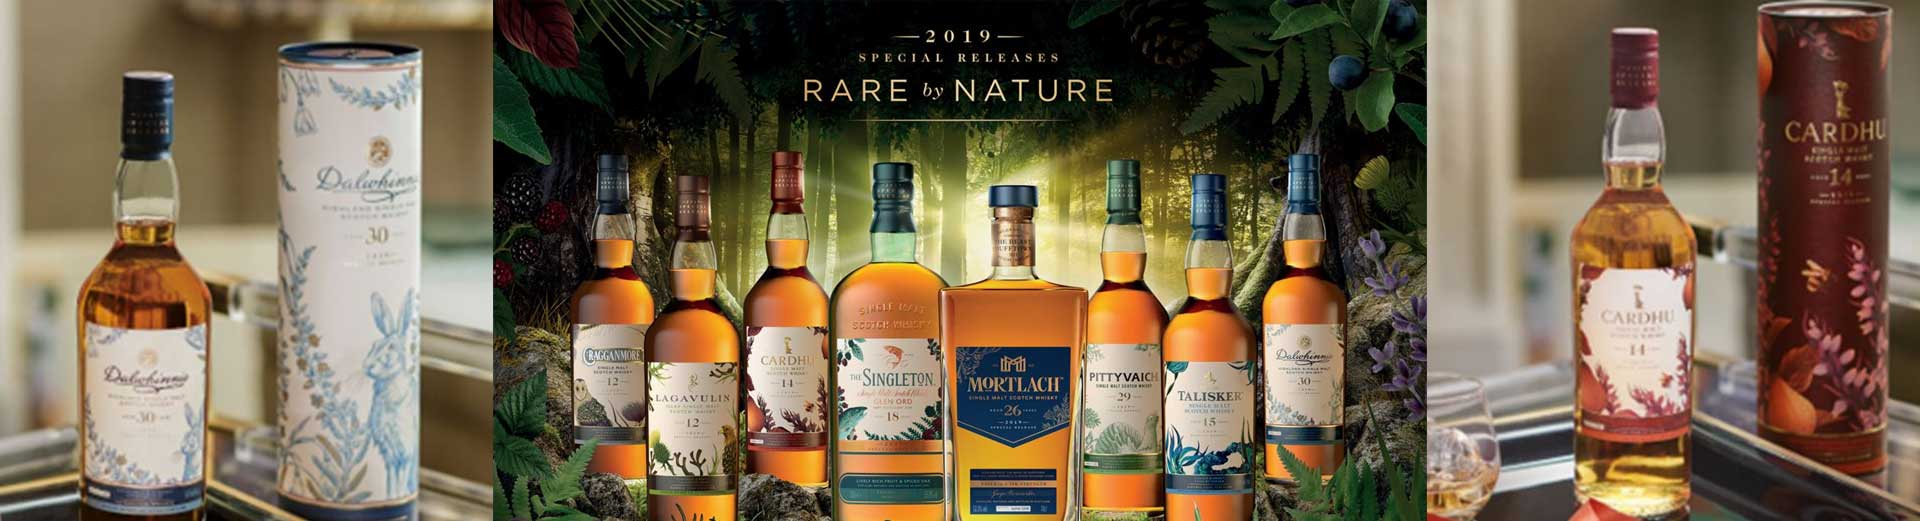 Diageo Special Releases 2019